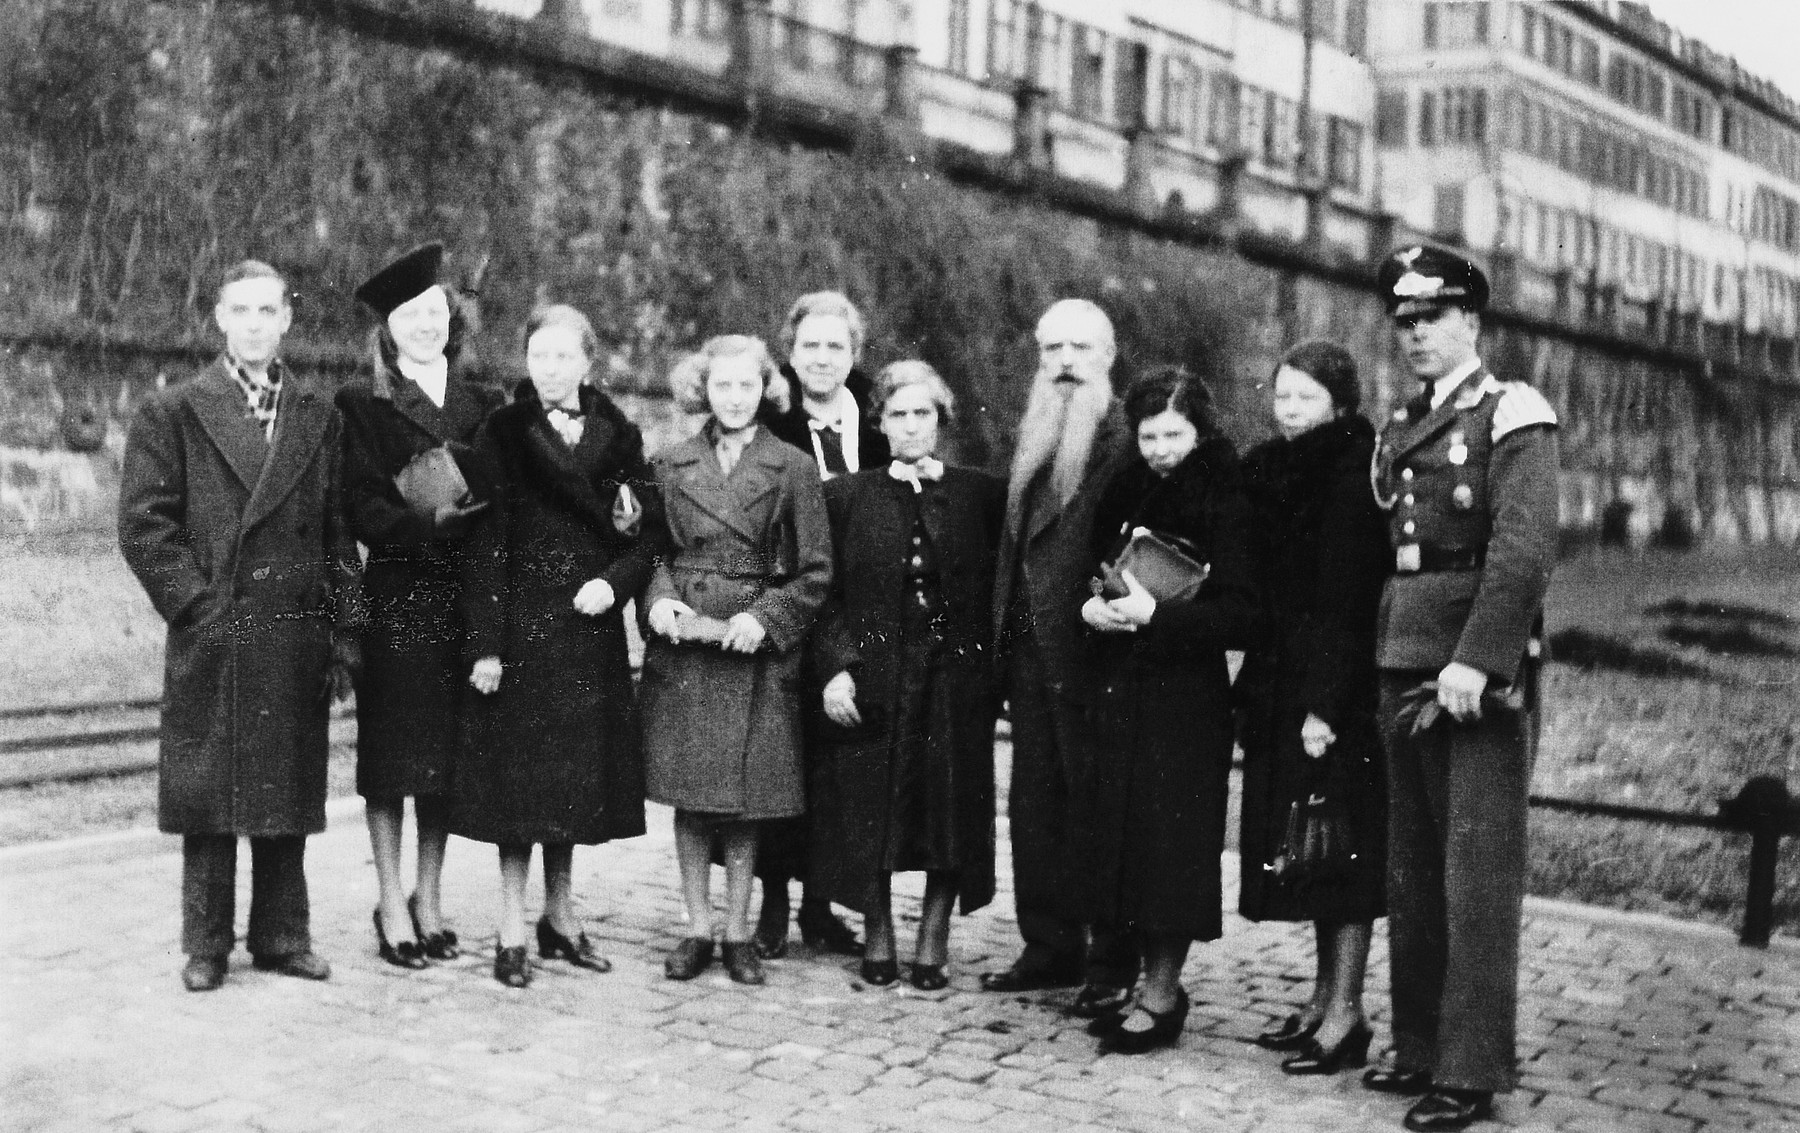 Portrait of a large intermarried German-Jewish family.  From left to right are Werner, Maria, Karola, Hilde, Else, Johanna, Karl, Erna, Rosa, and Willy in his Luftwaffe Music Corps uniform.